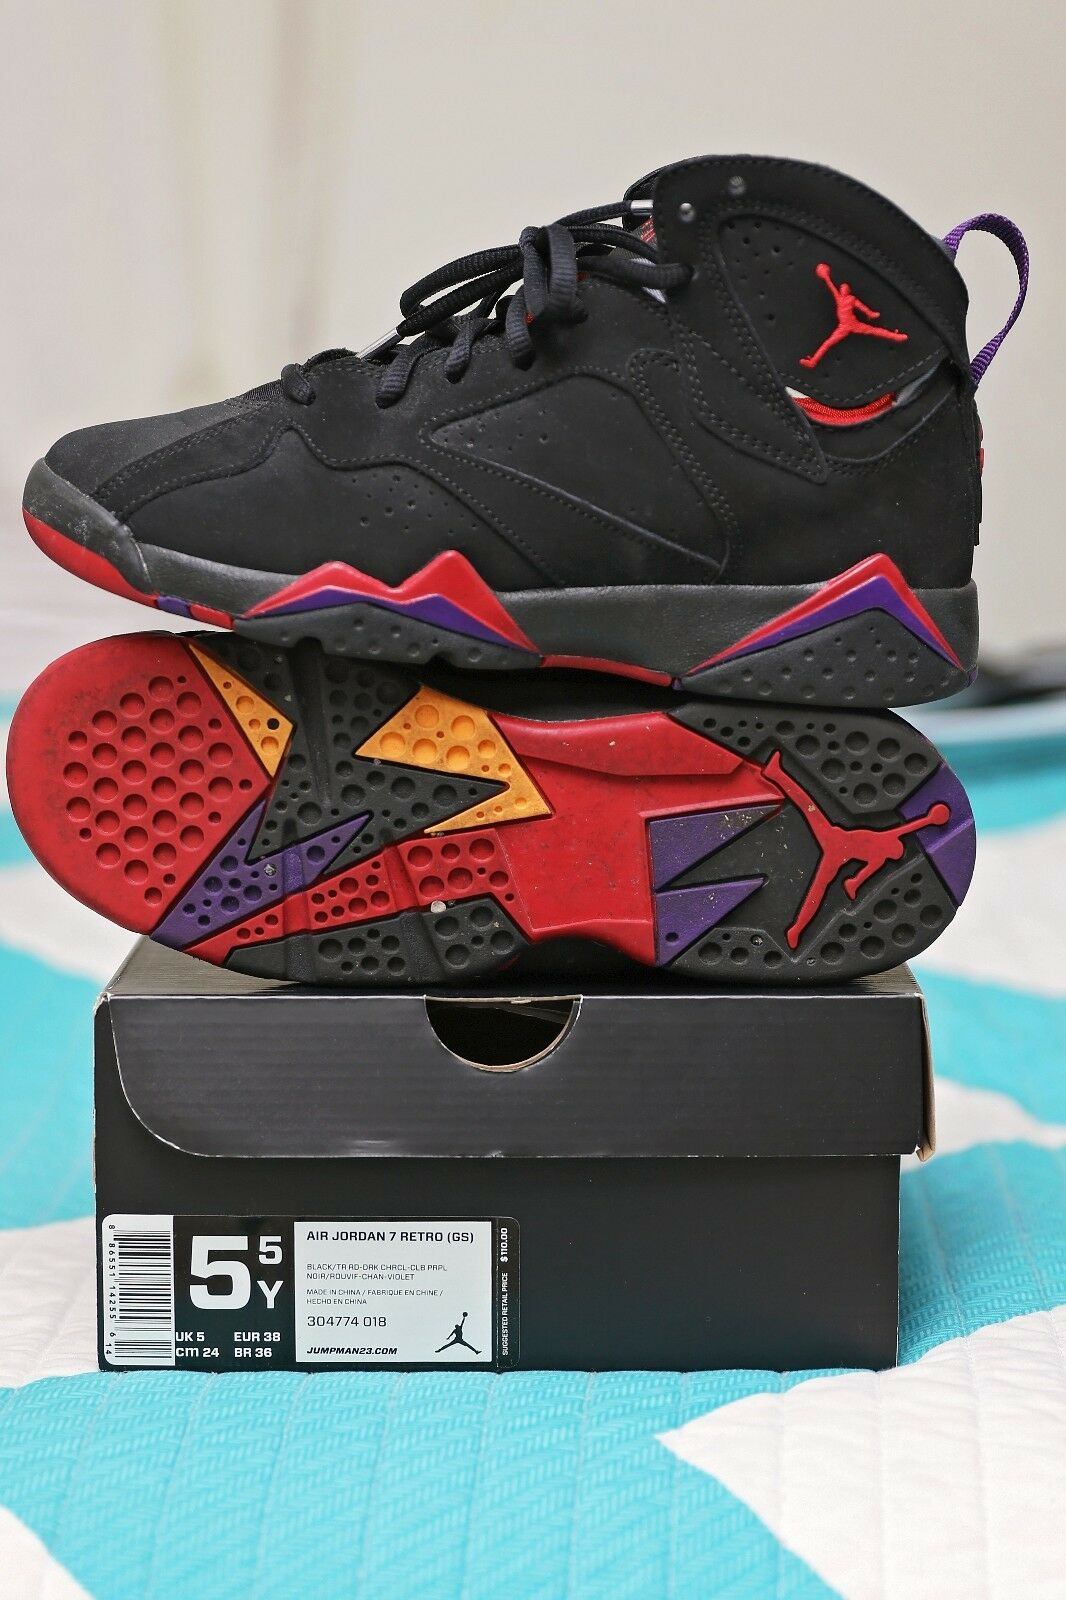 Nike Air Jordan VII 7 Retro Raptor GS Sz. 5.5 Cheap and beautiful fashion